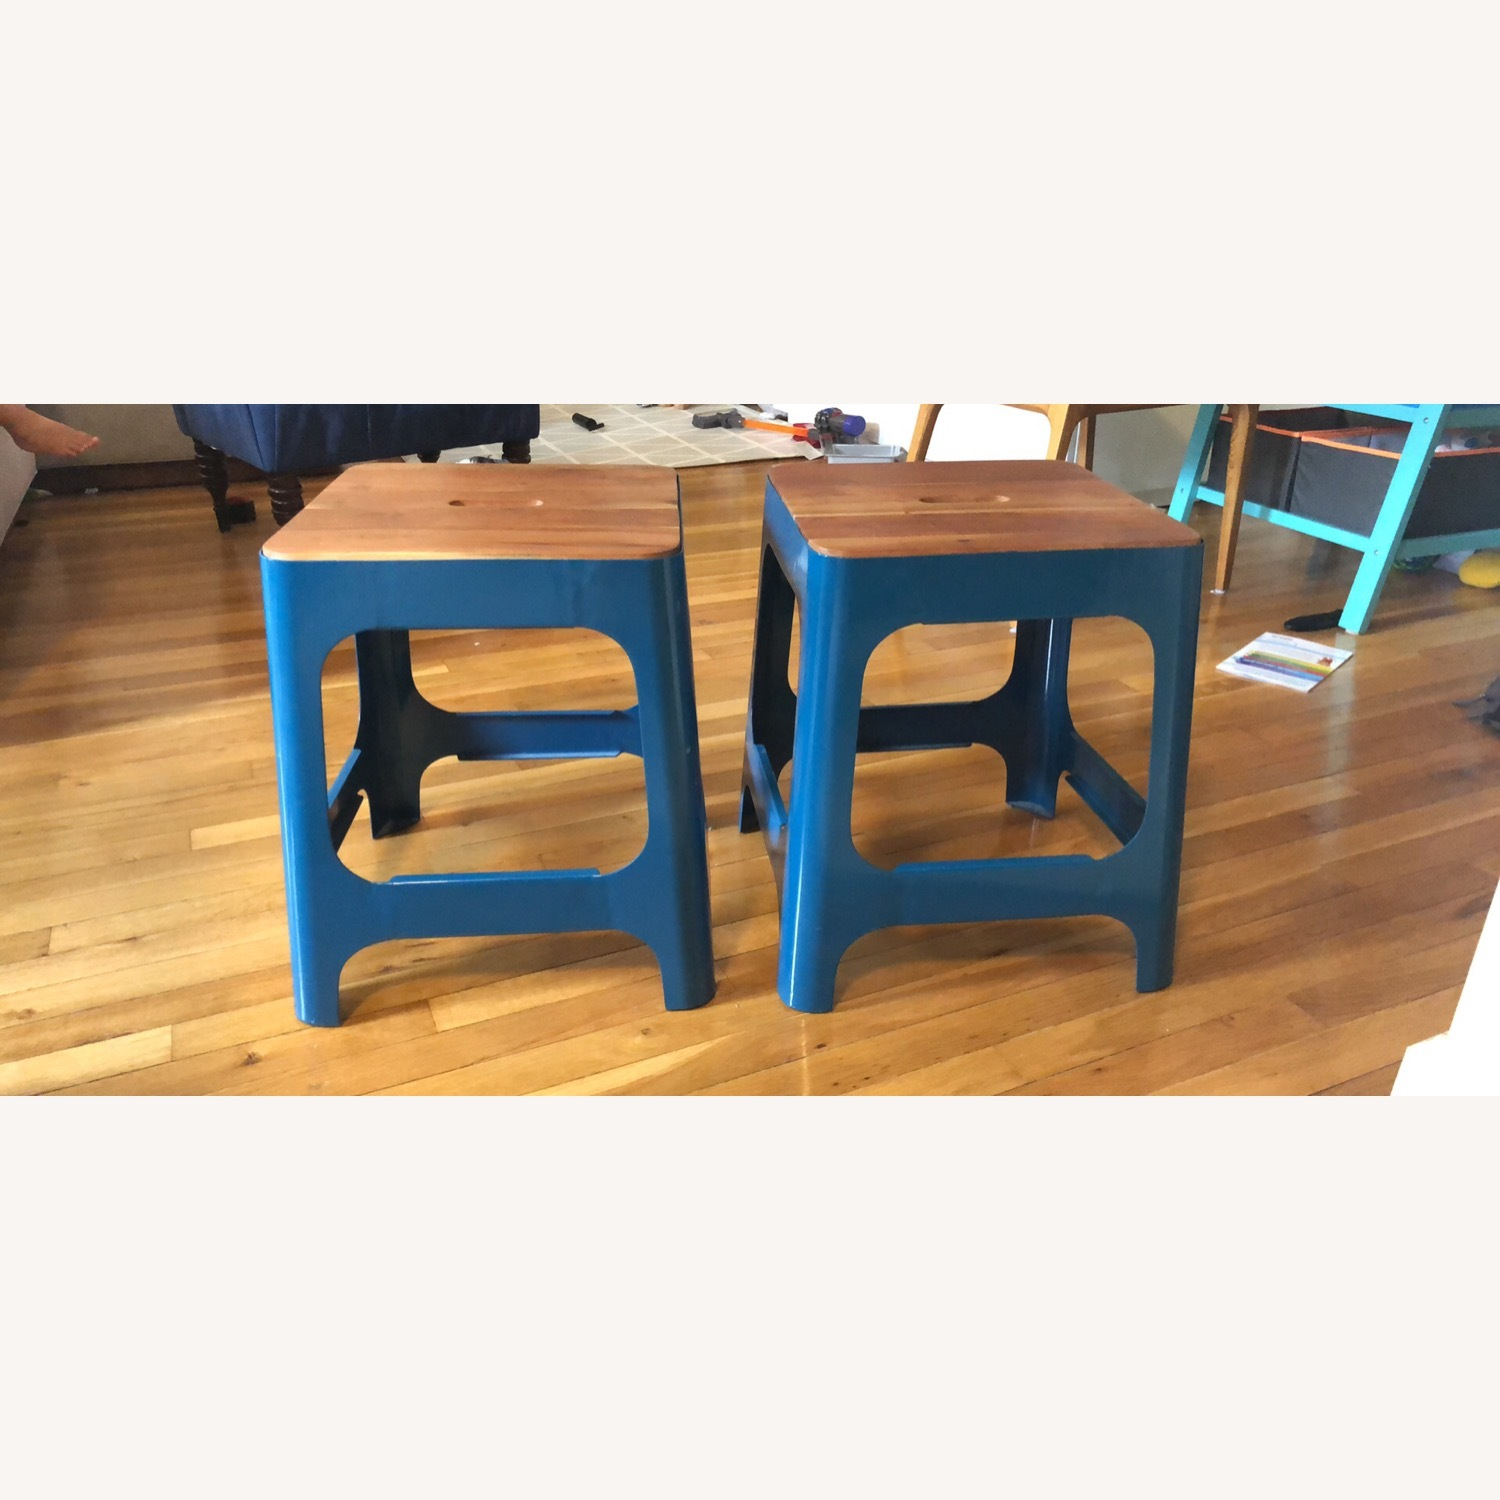 CB2 Hitch Stool in Peacock blue - image-3